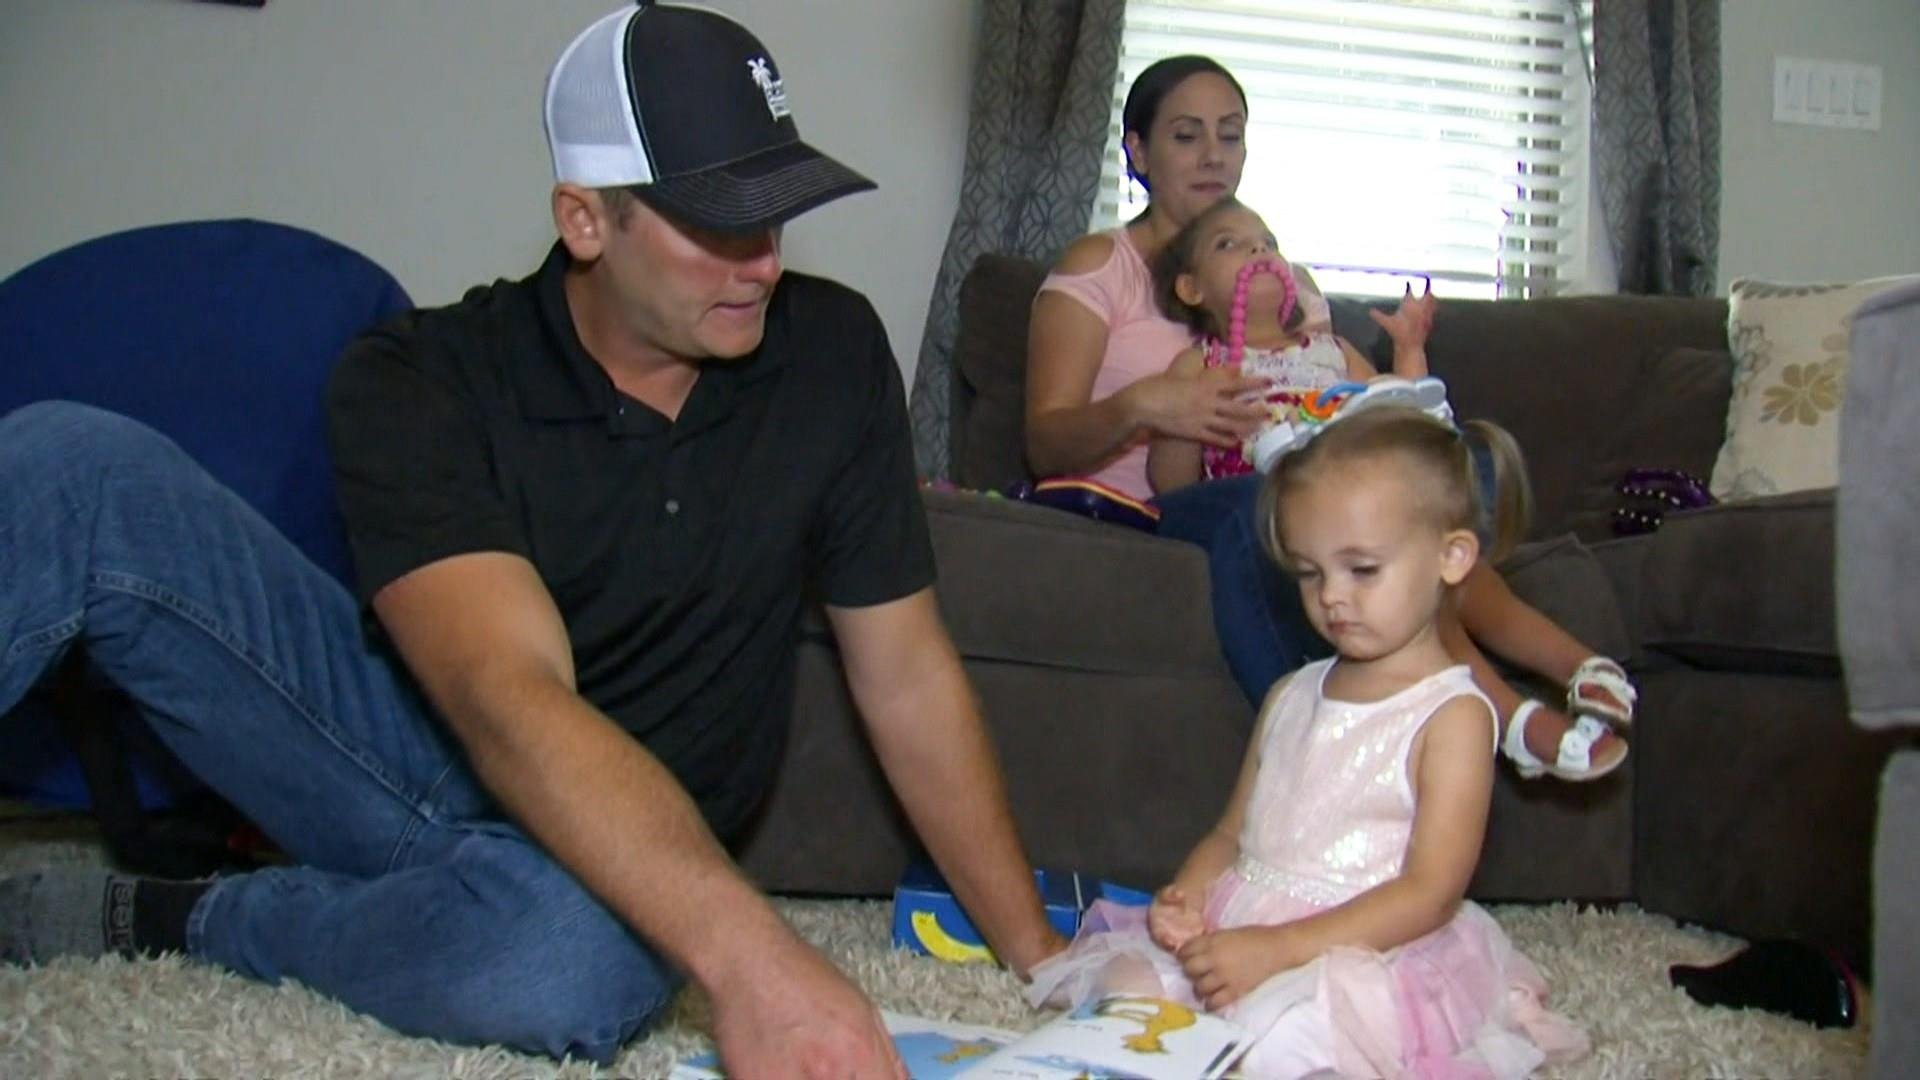 Texas couple considering divorce to help pay for daughter's healthcare costs